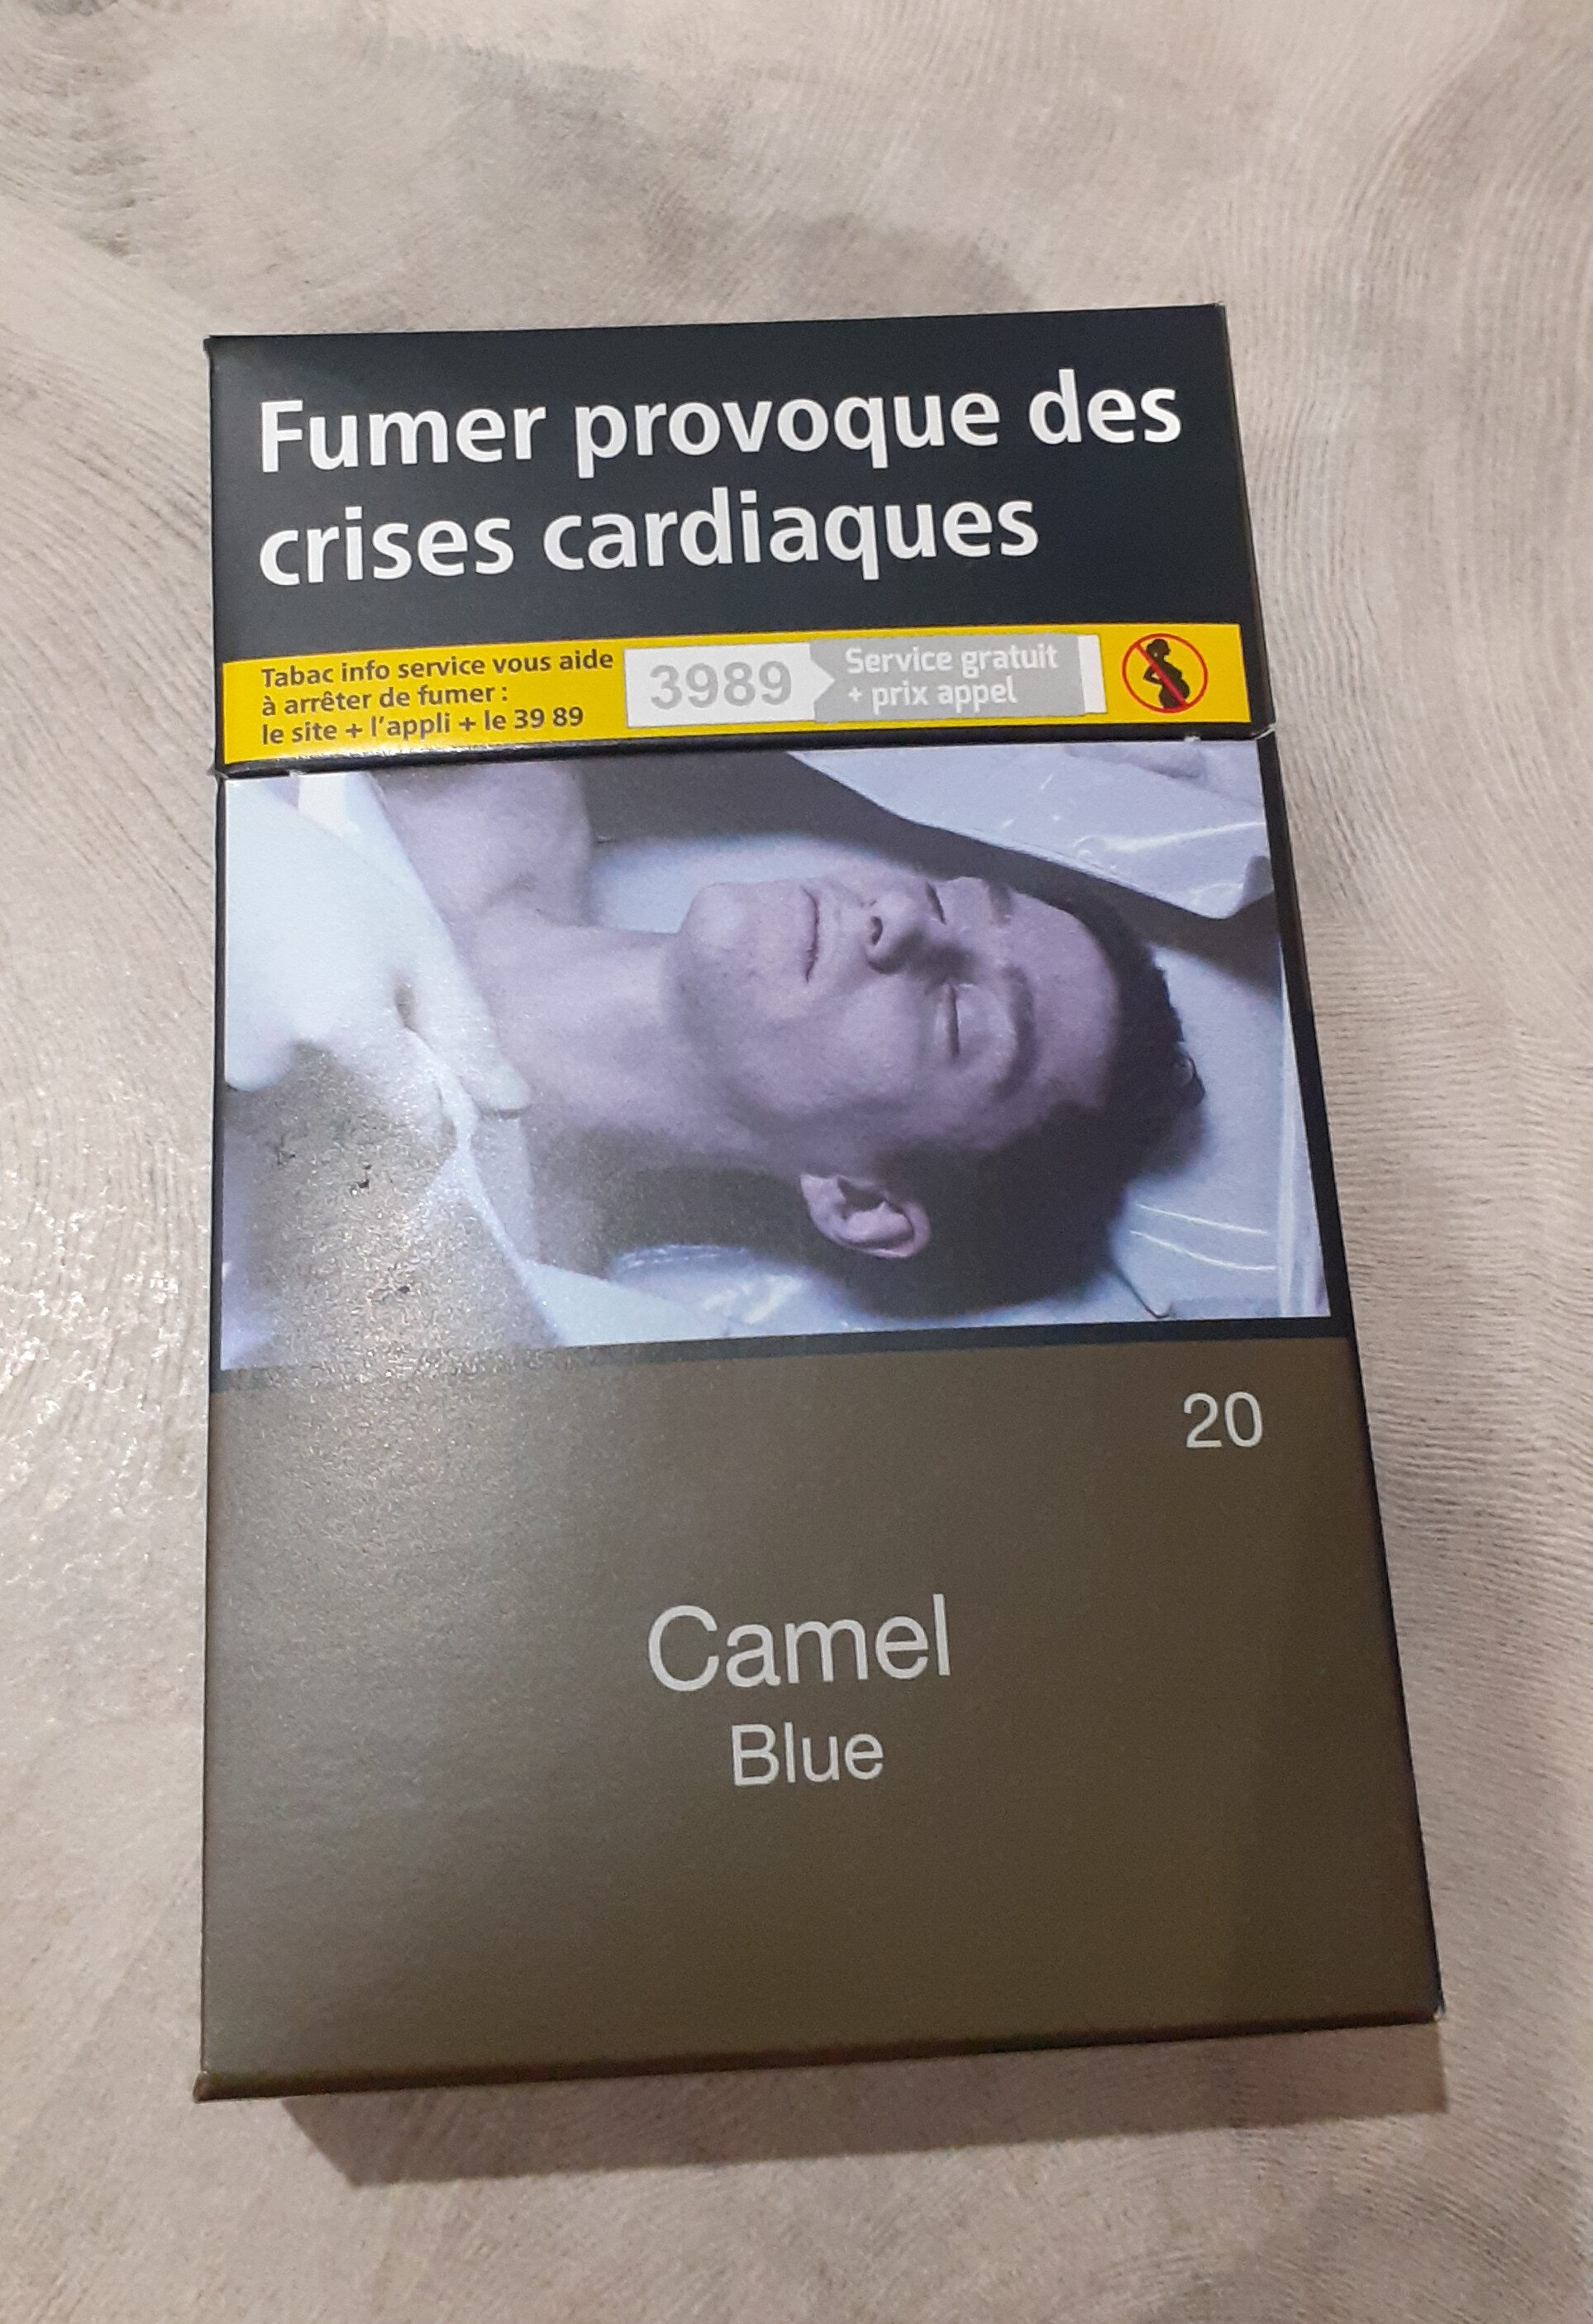 cigarette - Product - fr